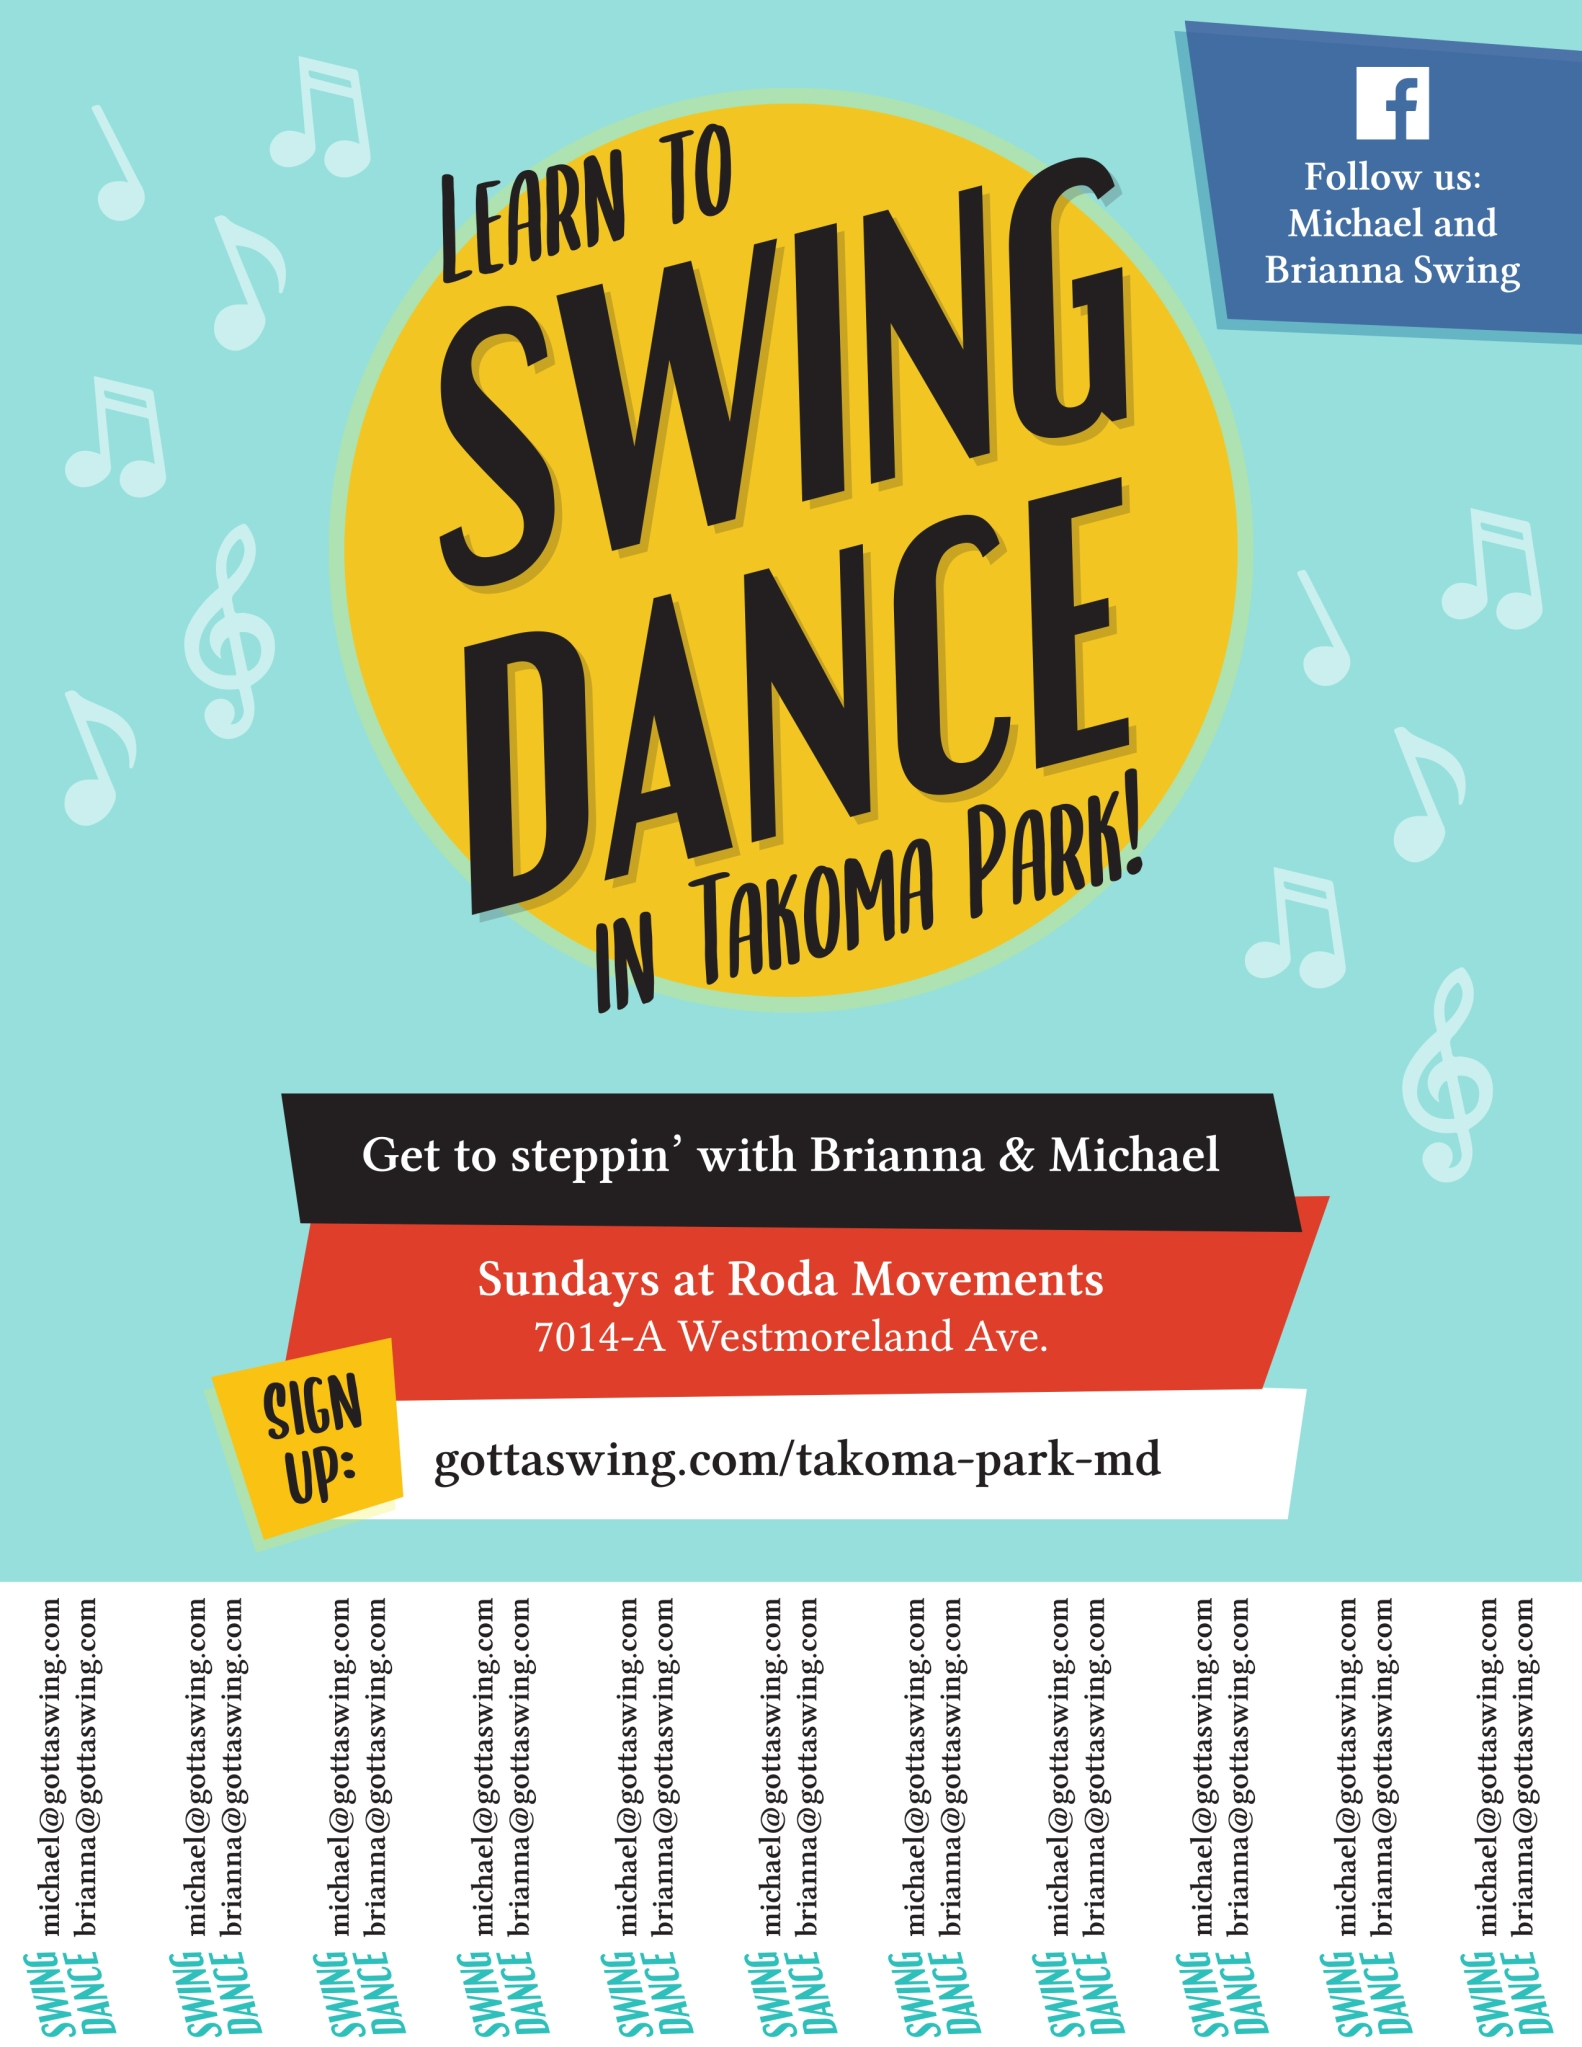 swing-dance-takoma-park